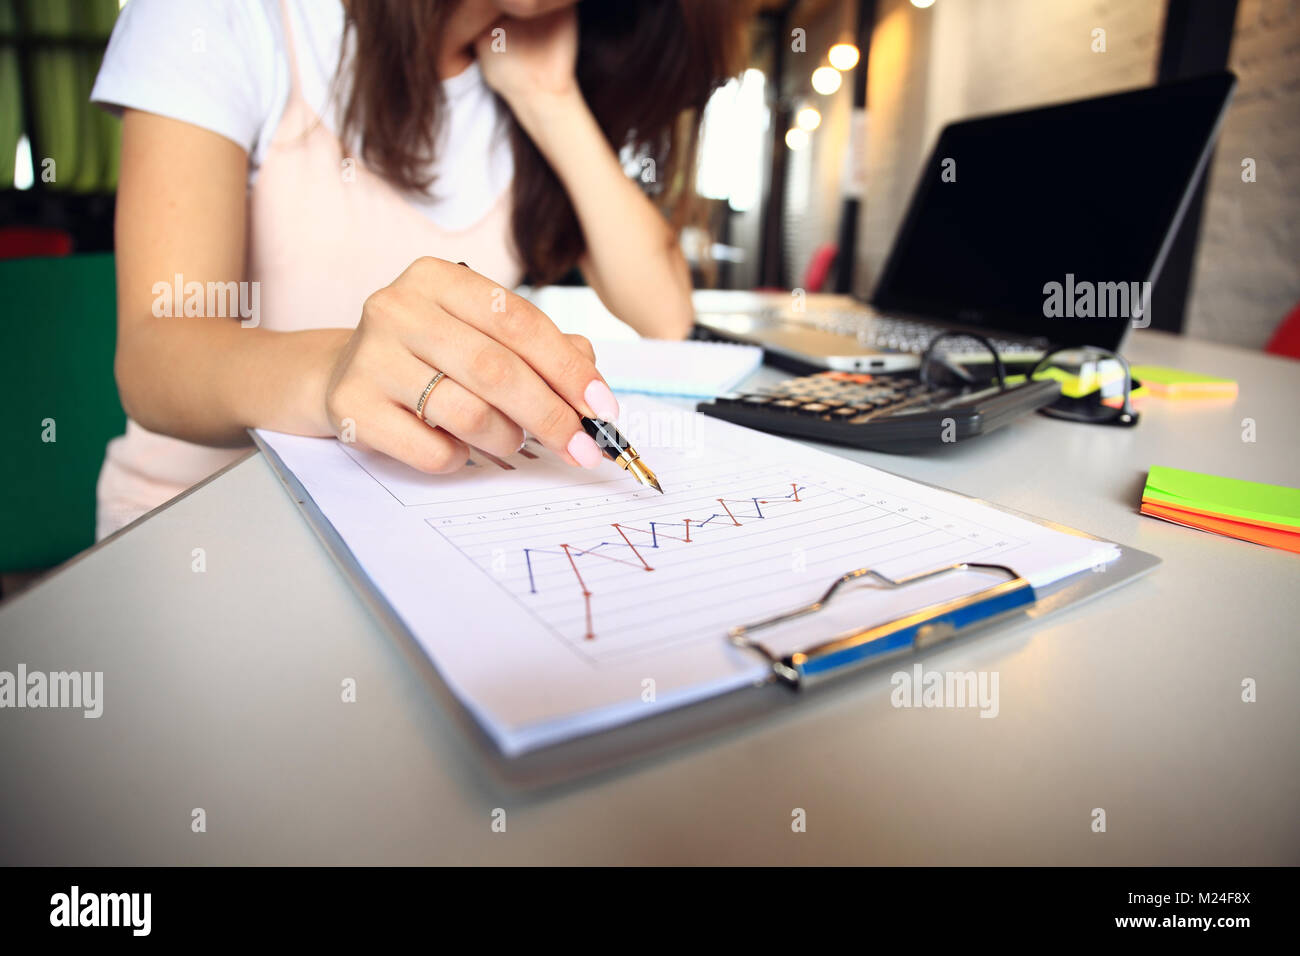 Close-up of female hand pointing at business document en expliquant le tableau. Photo Stock